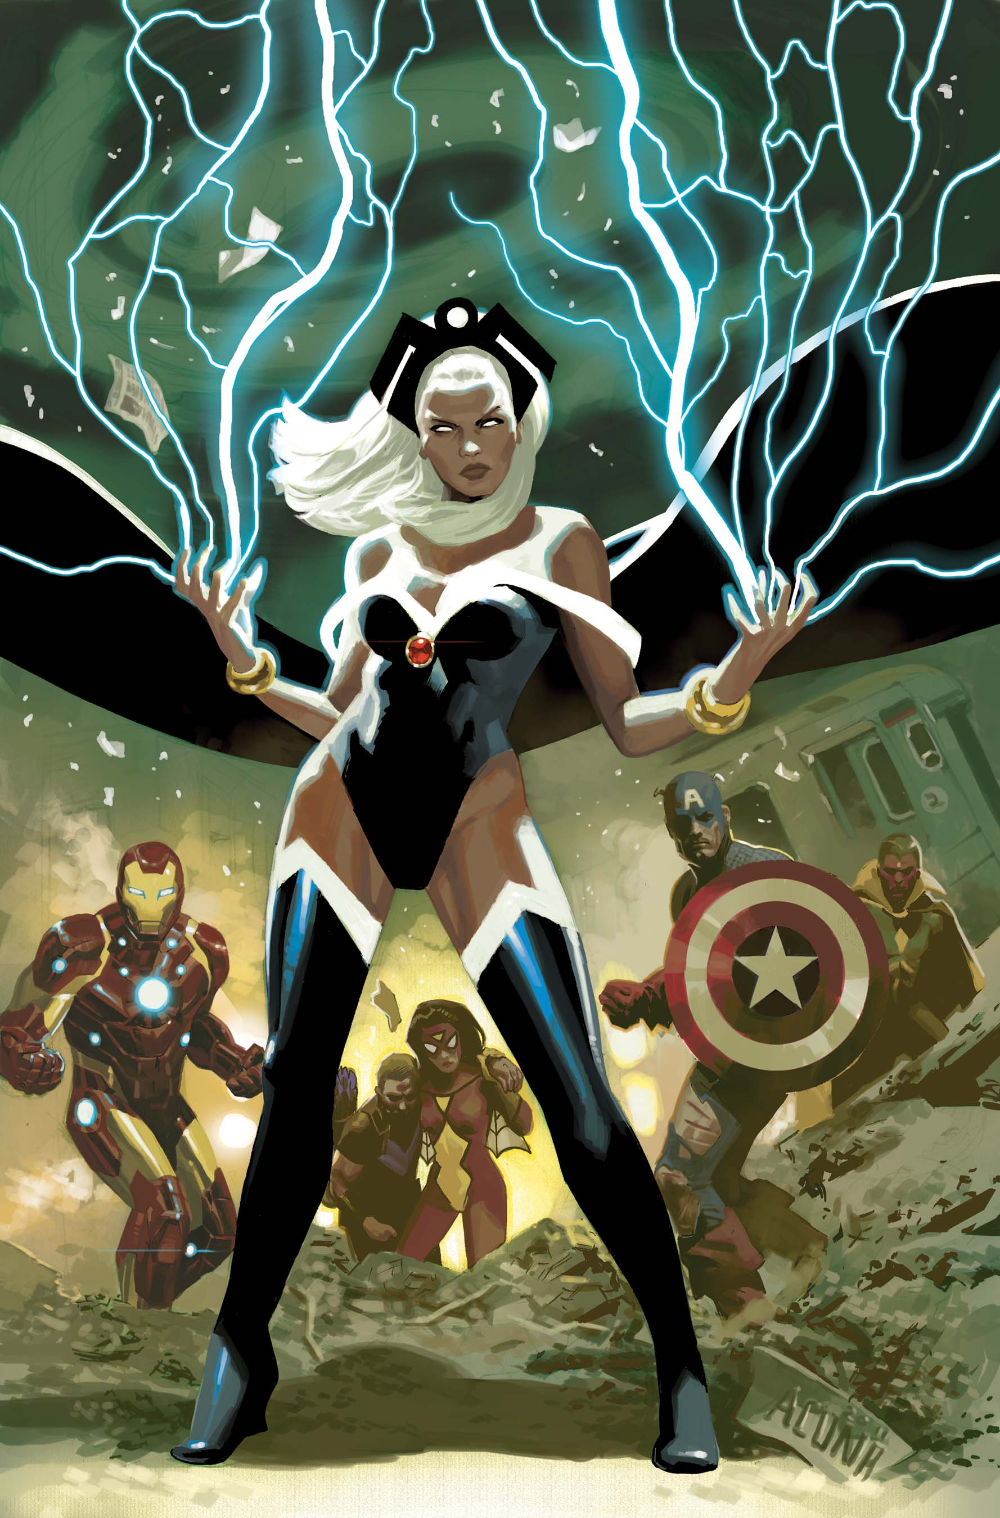 x-men characters, While Iron Man reinvented his armour multiple times, Storm could easily defeat him.